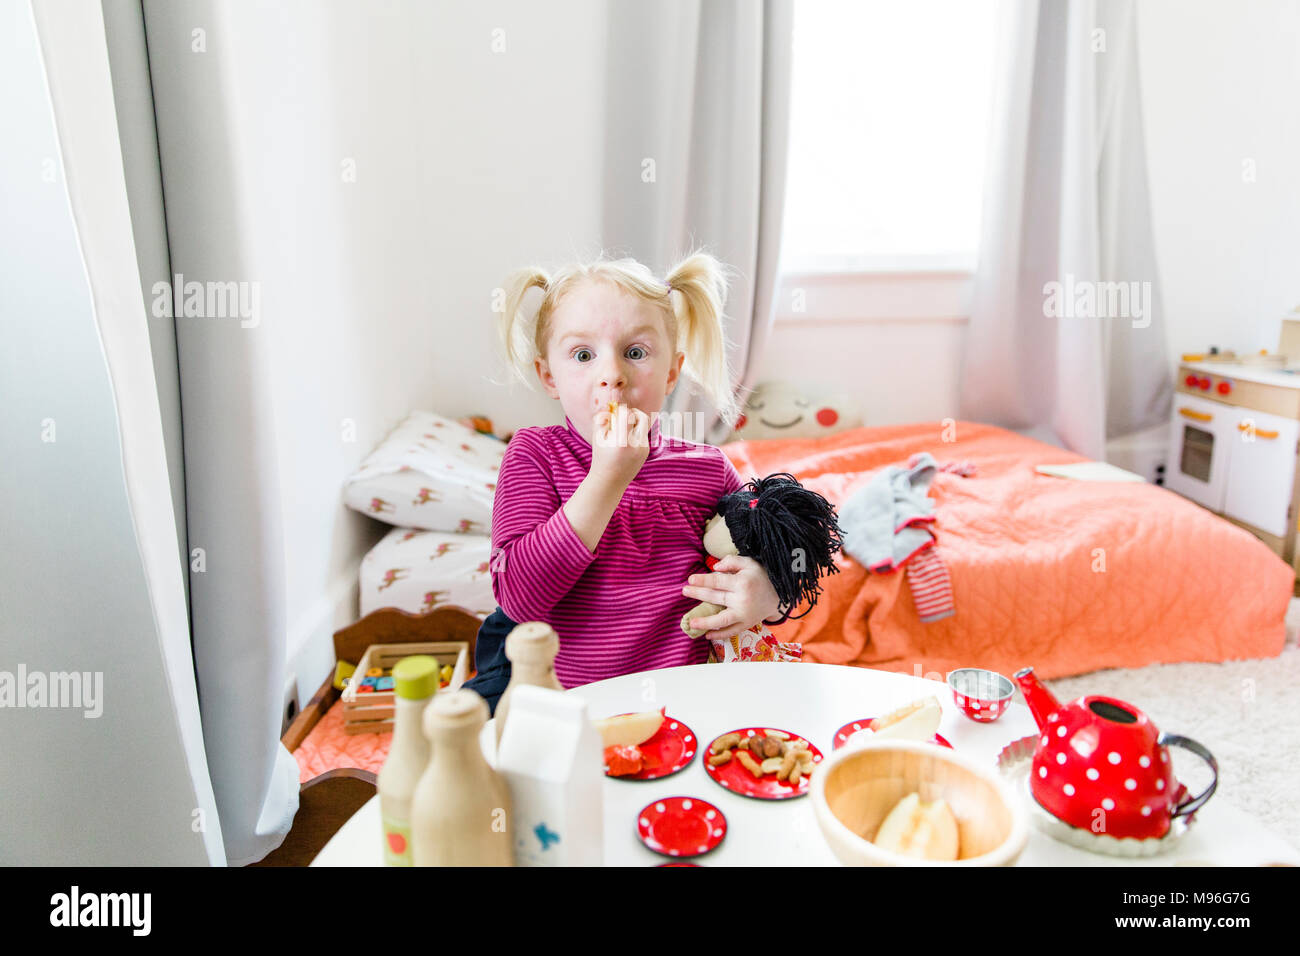 Girl sitting at table with doll eating - Stock Image